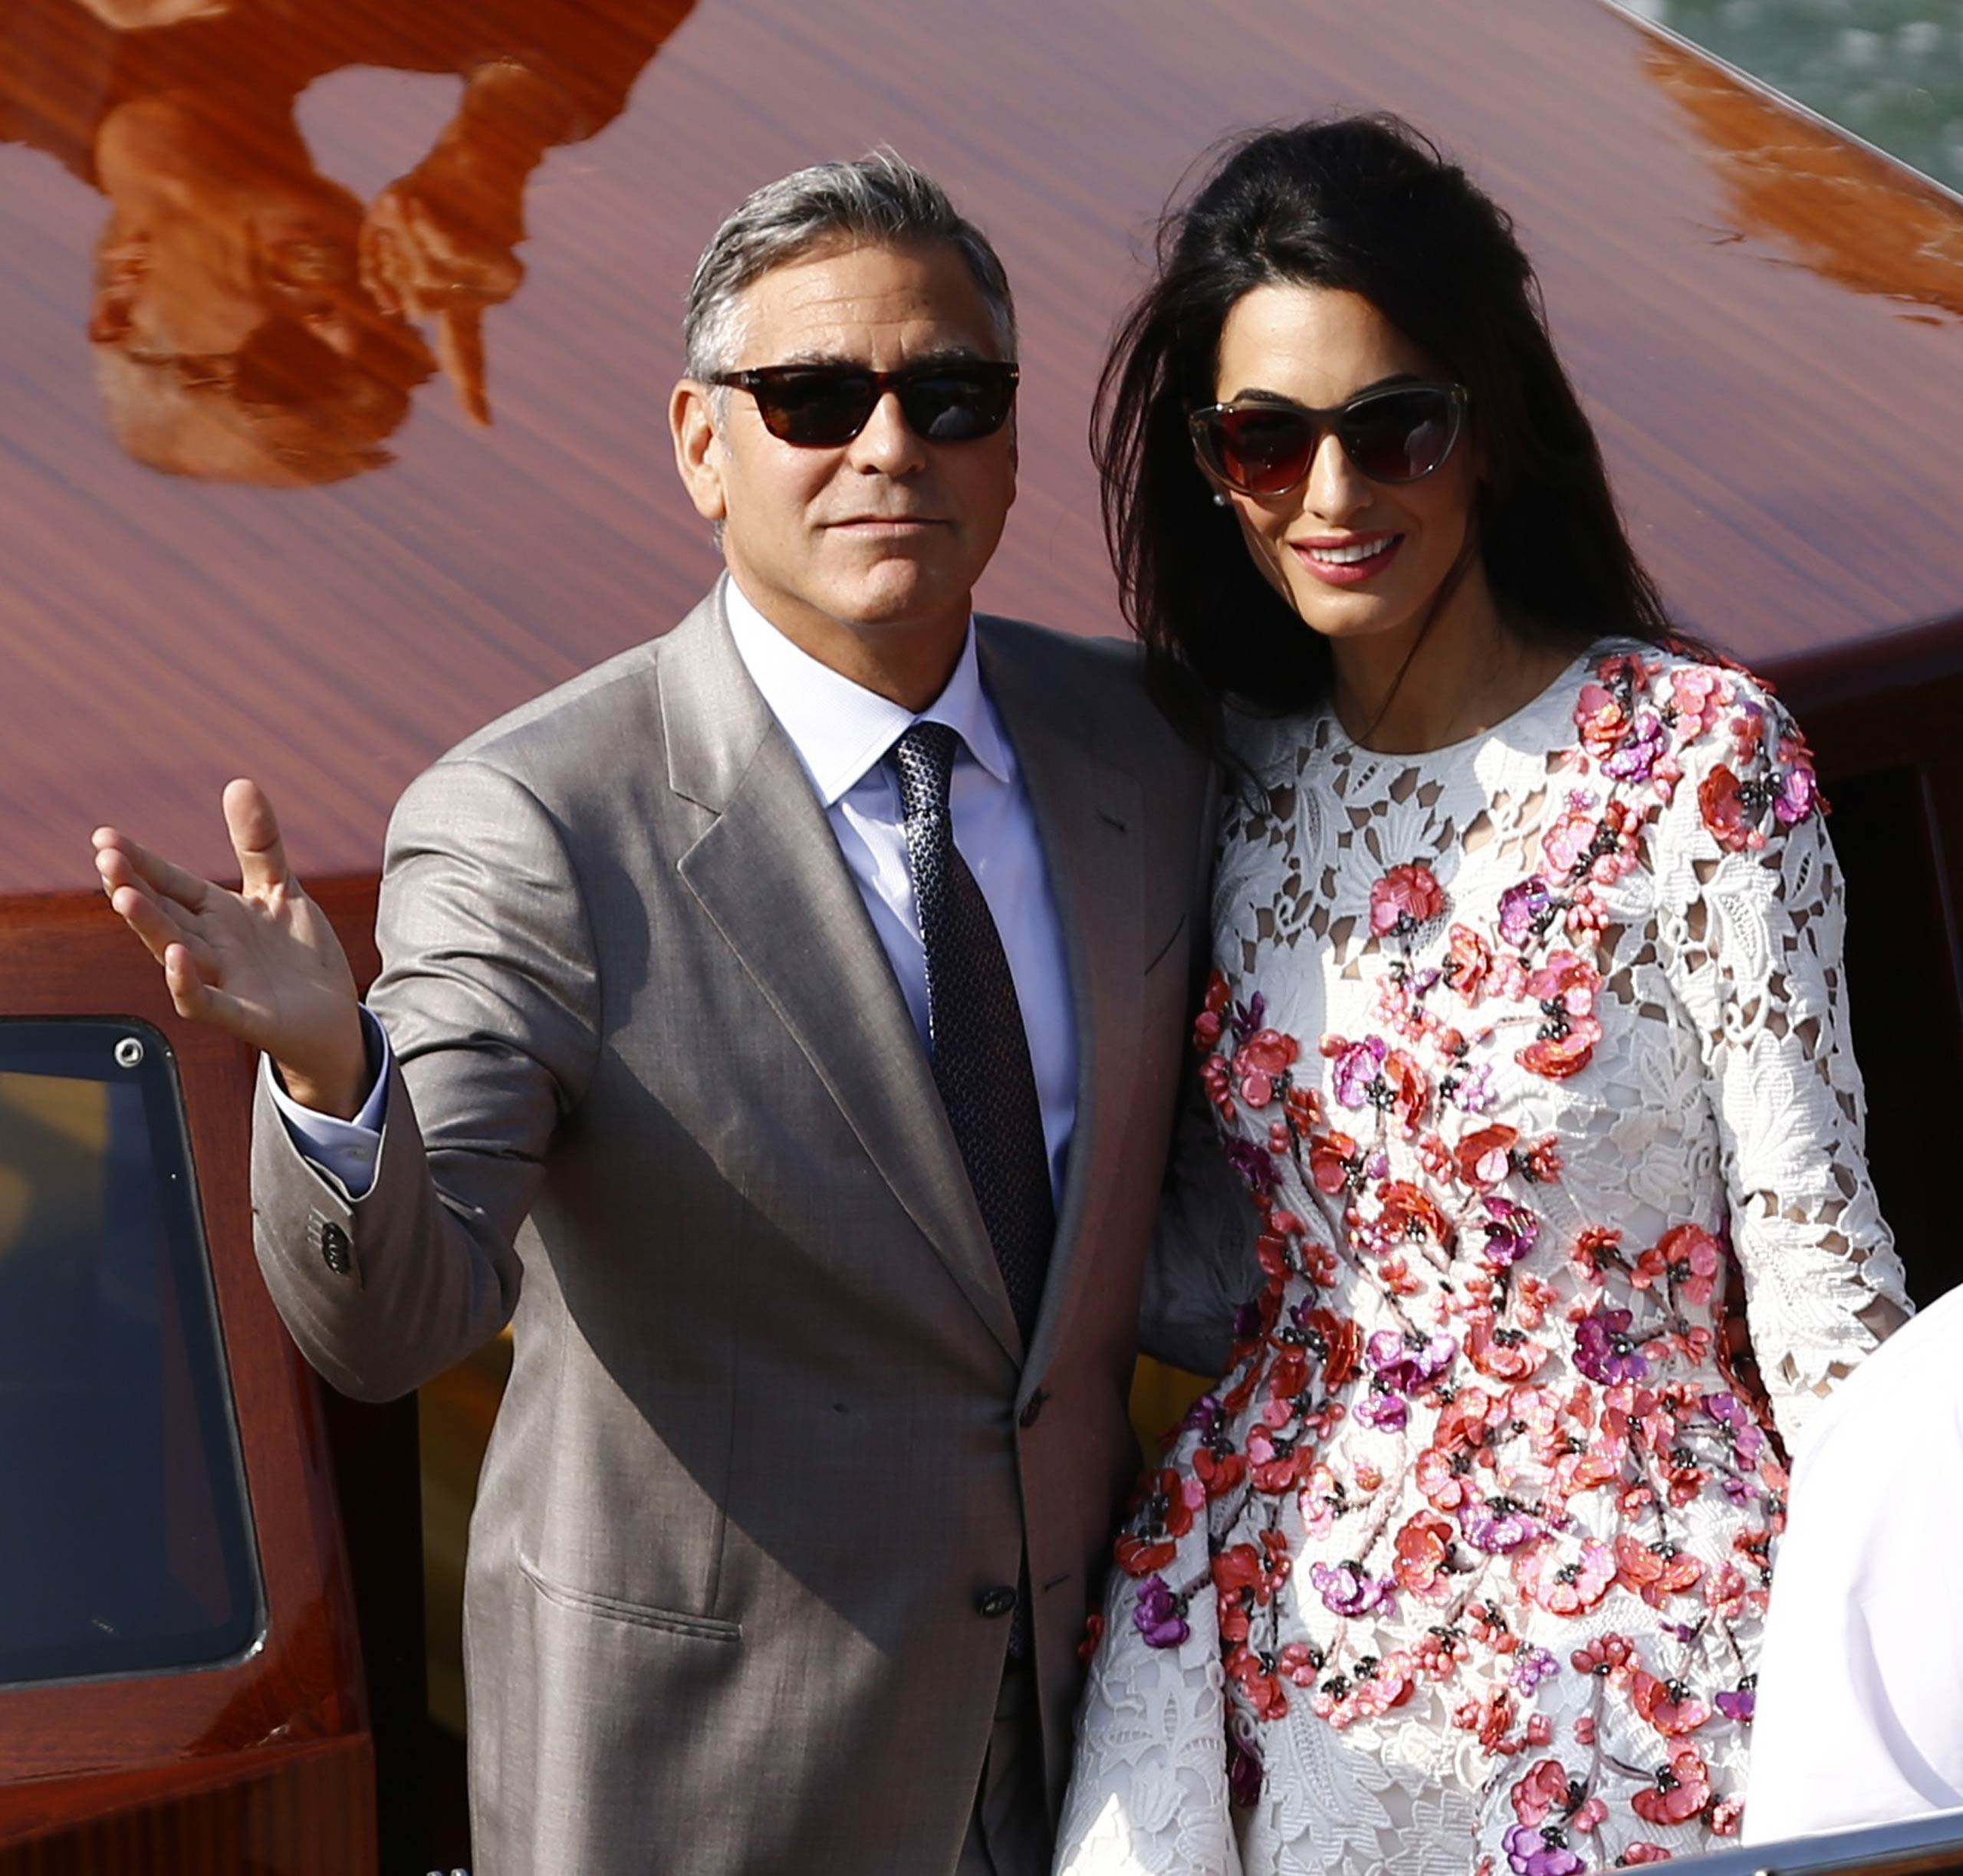 George and Amal Clooney stand on a taxi boat on the Grand Canal in Venice on Sept. 28, 2014.